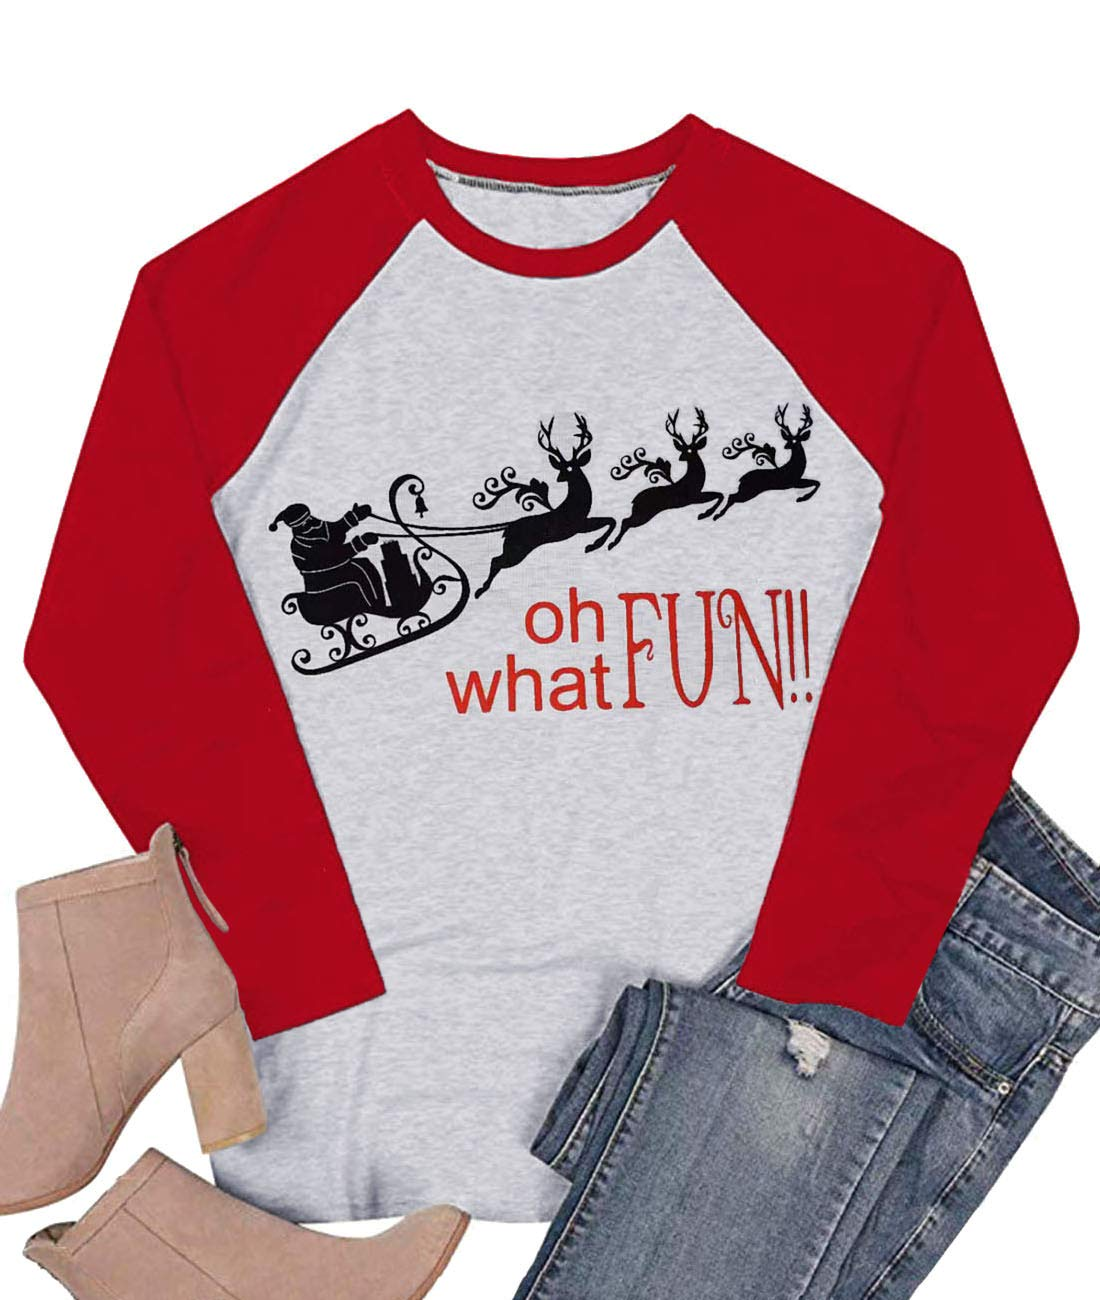 LeMarnia Women's Crewneck Cute Christmas Shirts Letter Print Graphic Tees Color Block Casual Raglan Tops Red2 L